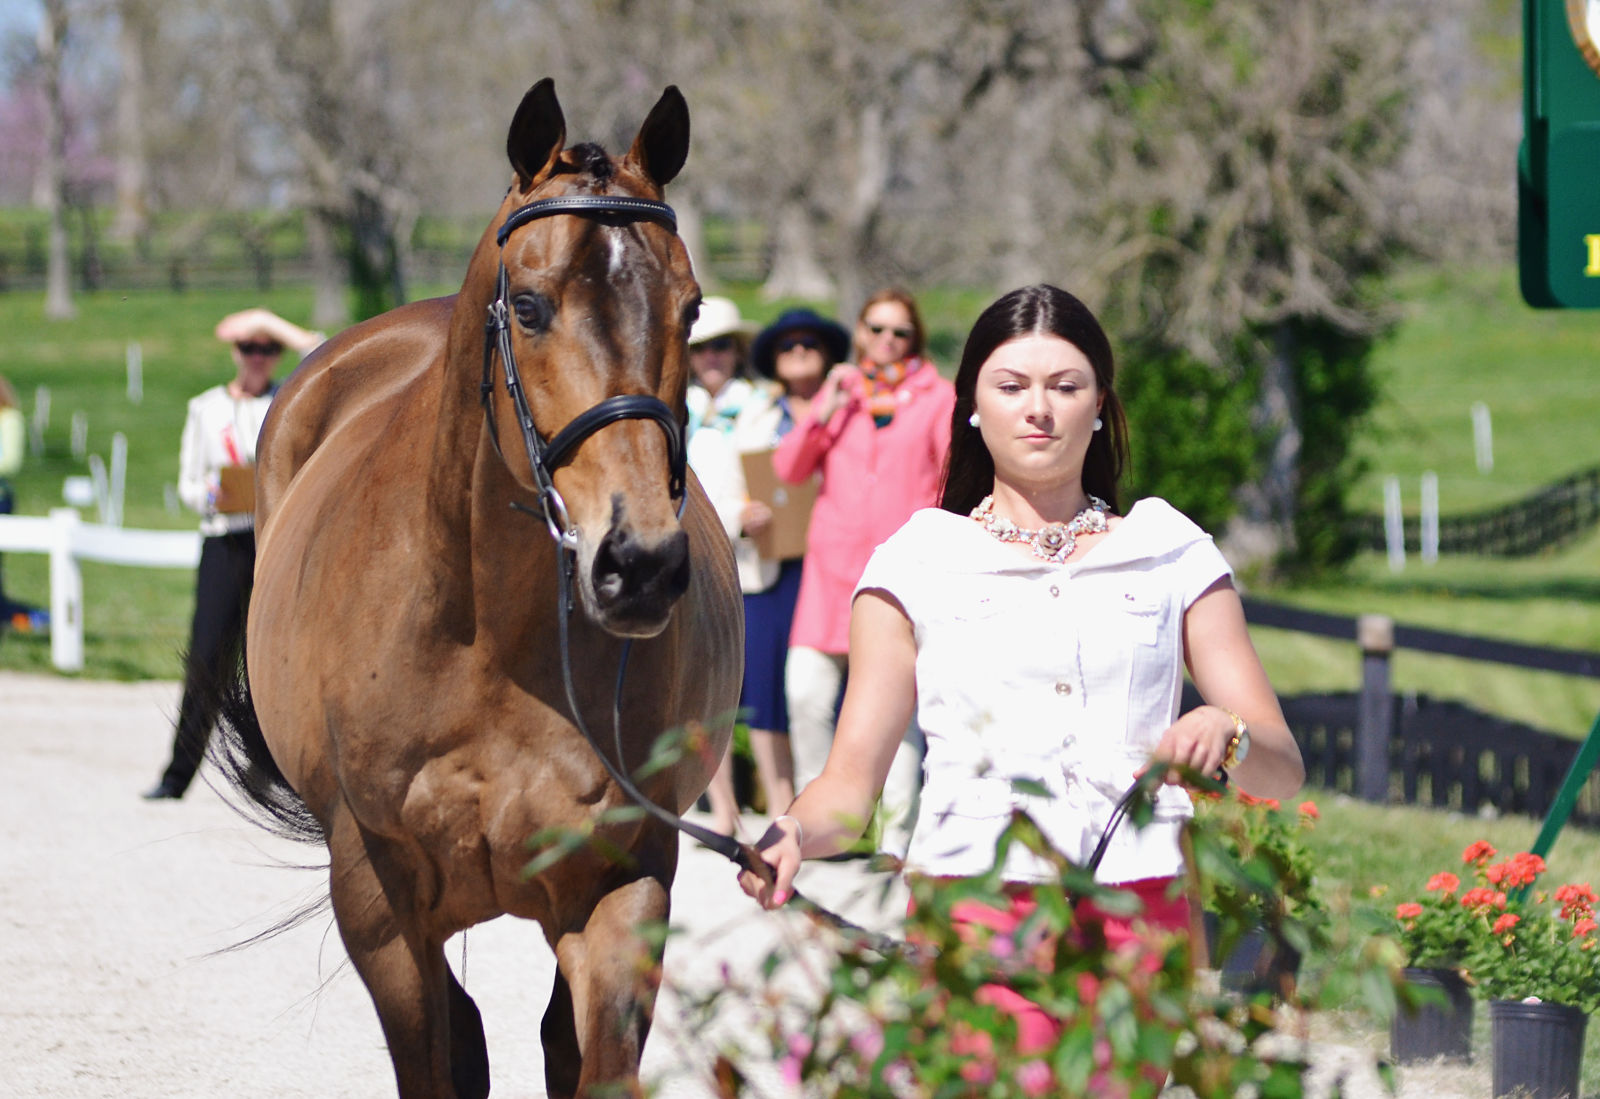 Rachel McDonough and Irish Rhythm. Photo by Jenni Autry.